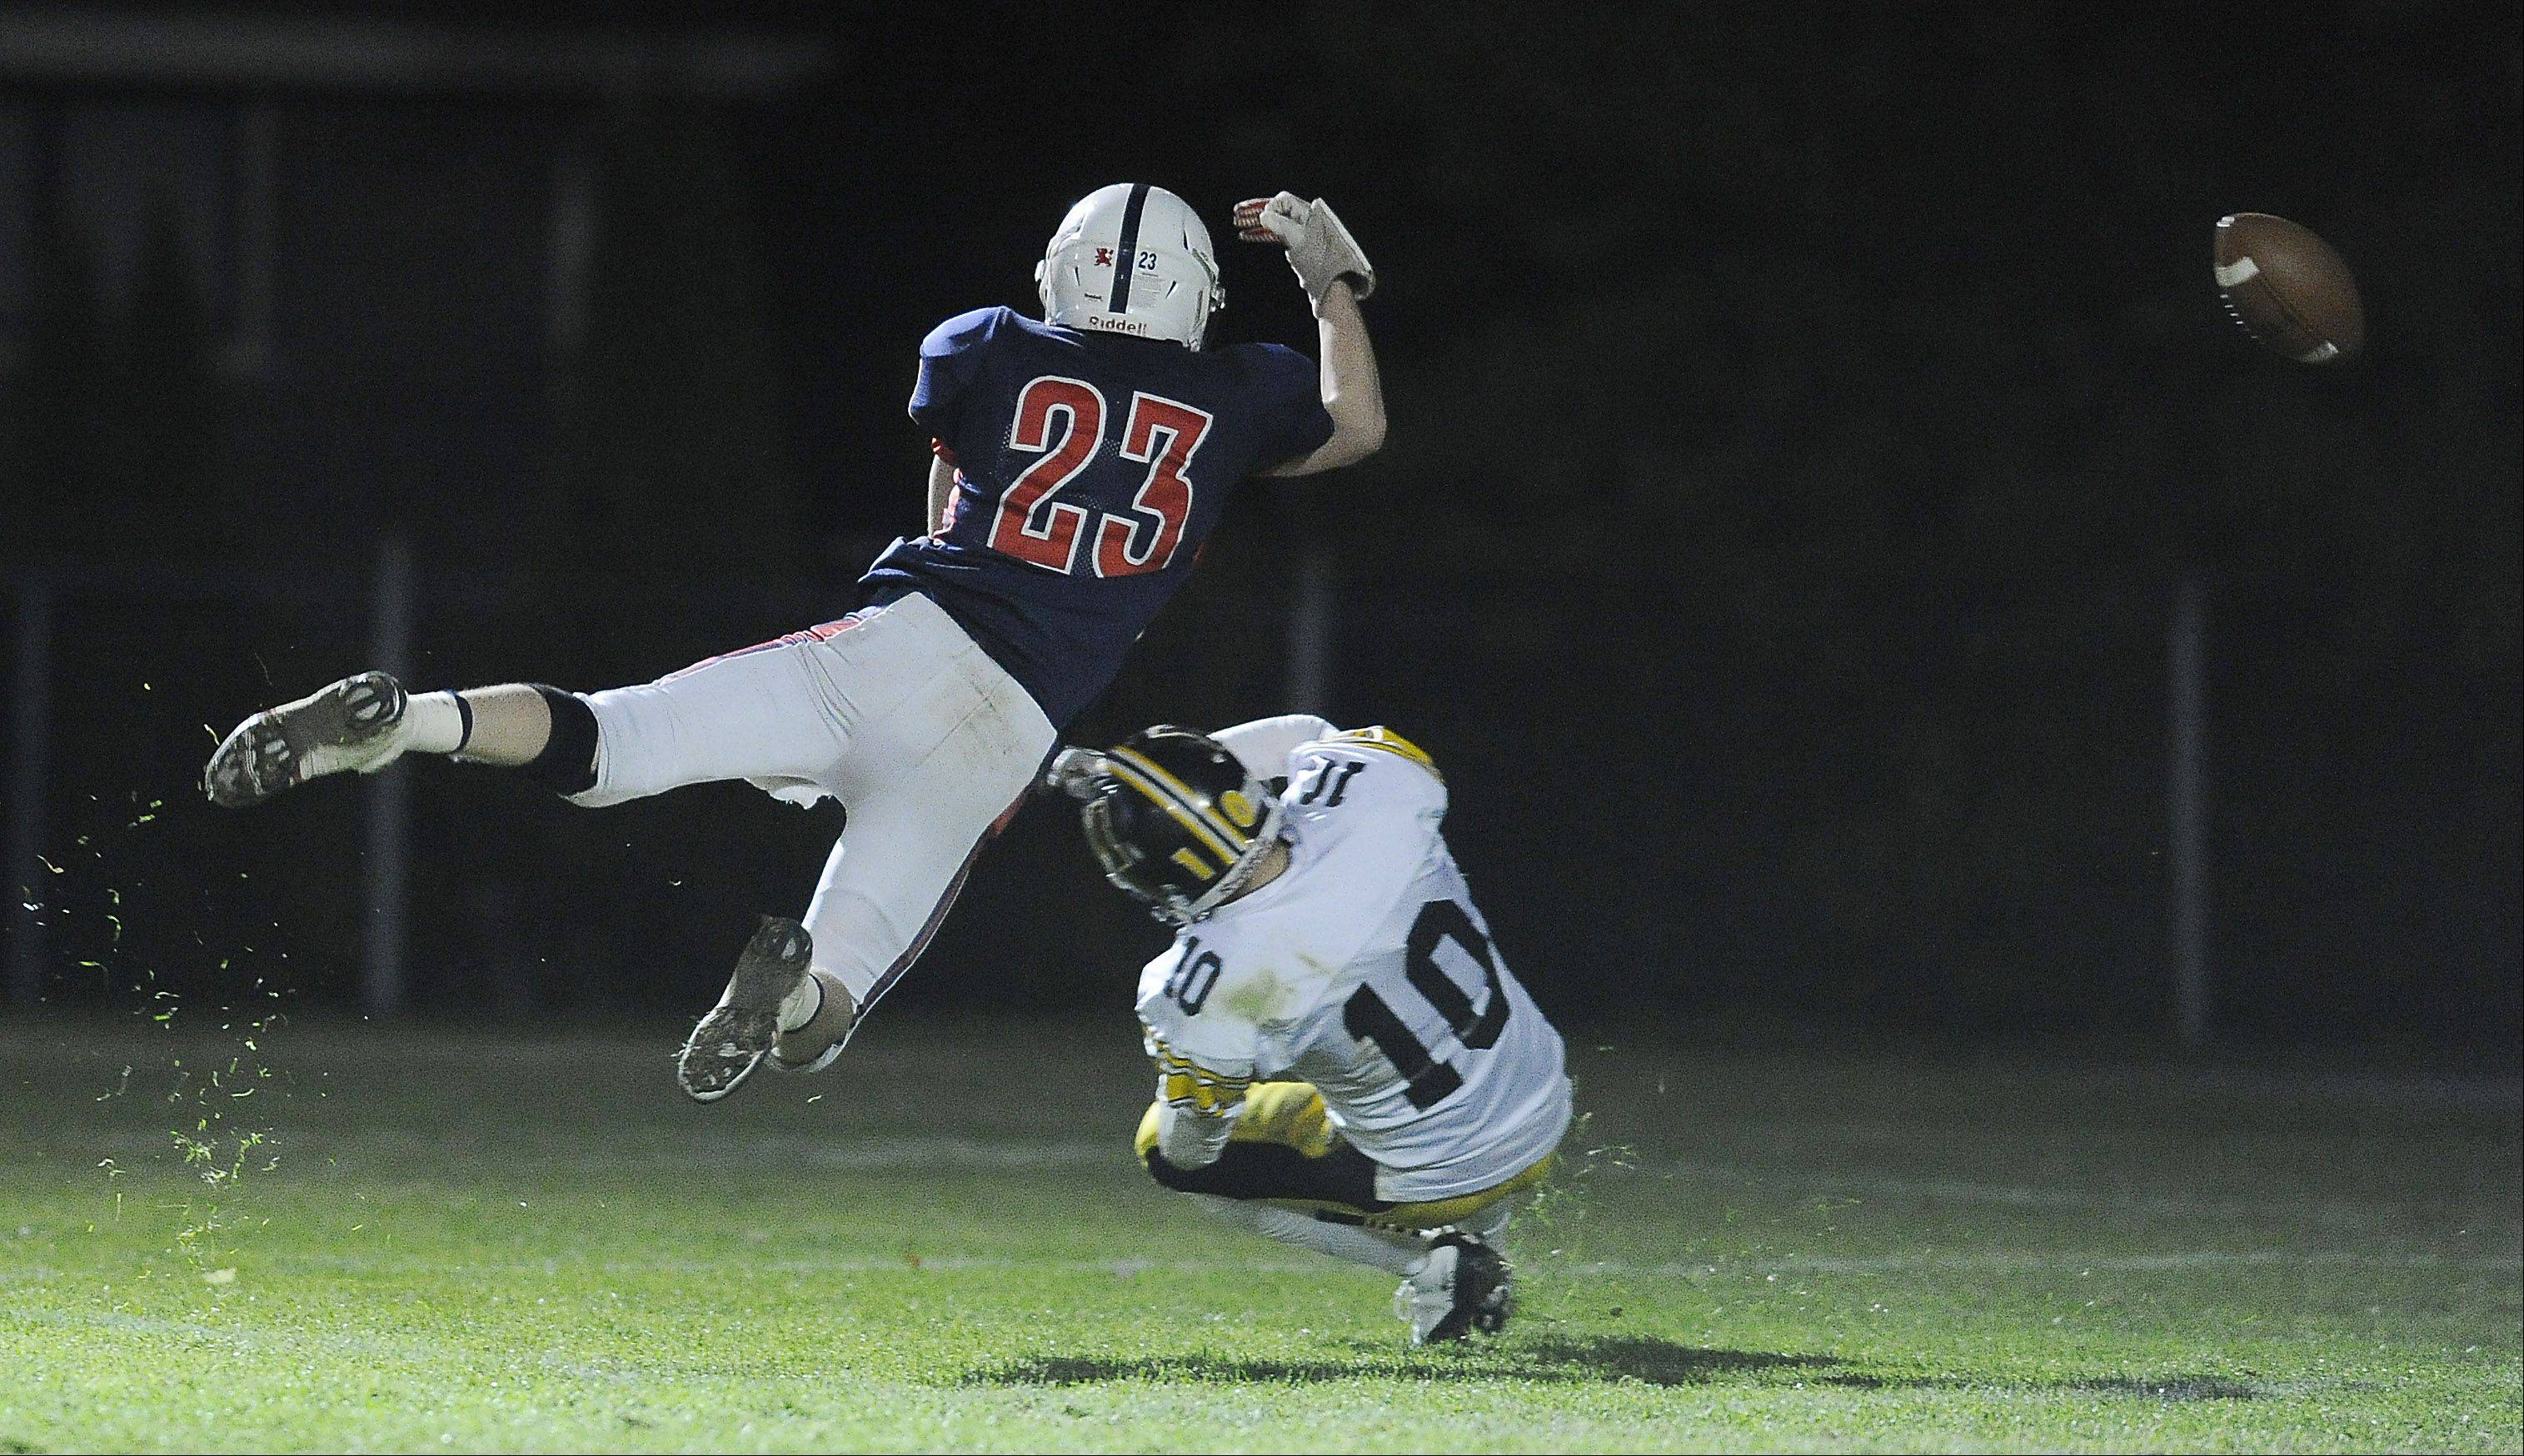 St. Viator's Kevin Hammarlund fails to haul in a catch under pressure from Marian Catholic's Patrick Swanson Friday at Forest View Educational Center in Arlington Heights.